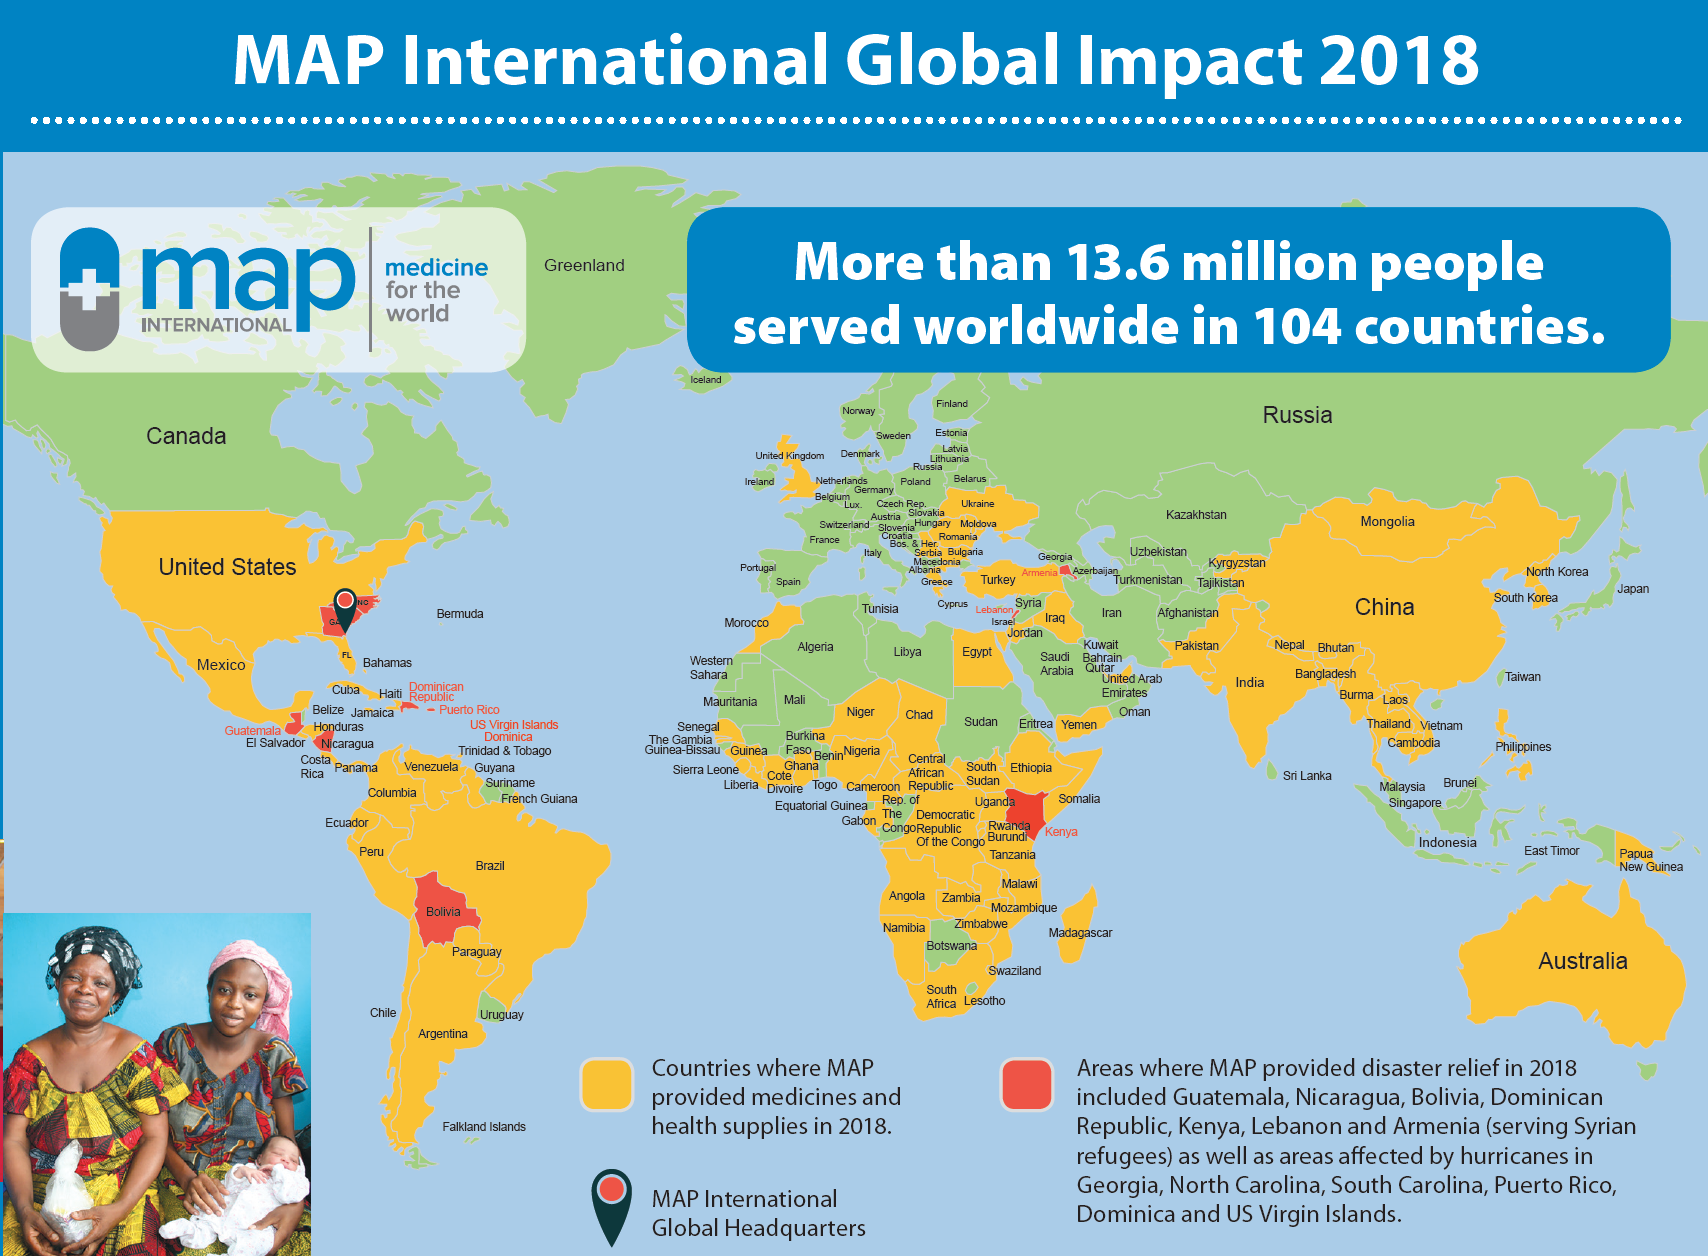 MAP International Our Impact - Medicine for the World